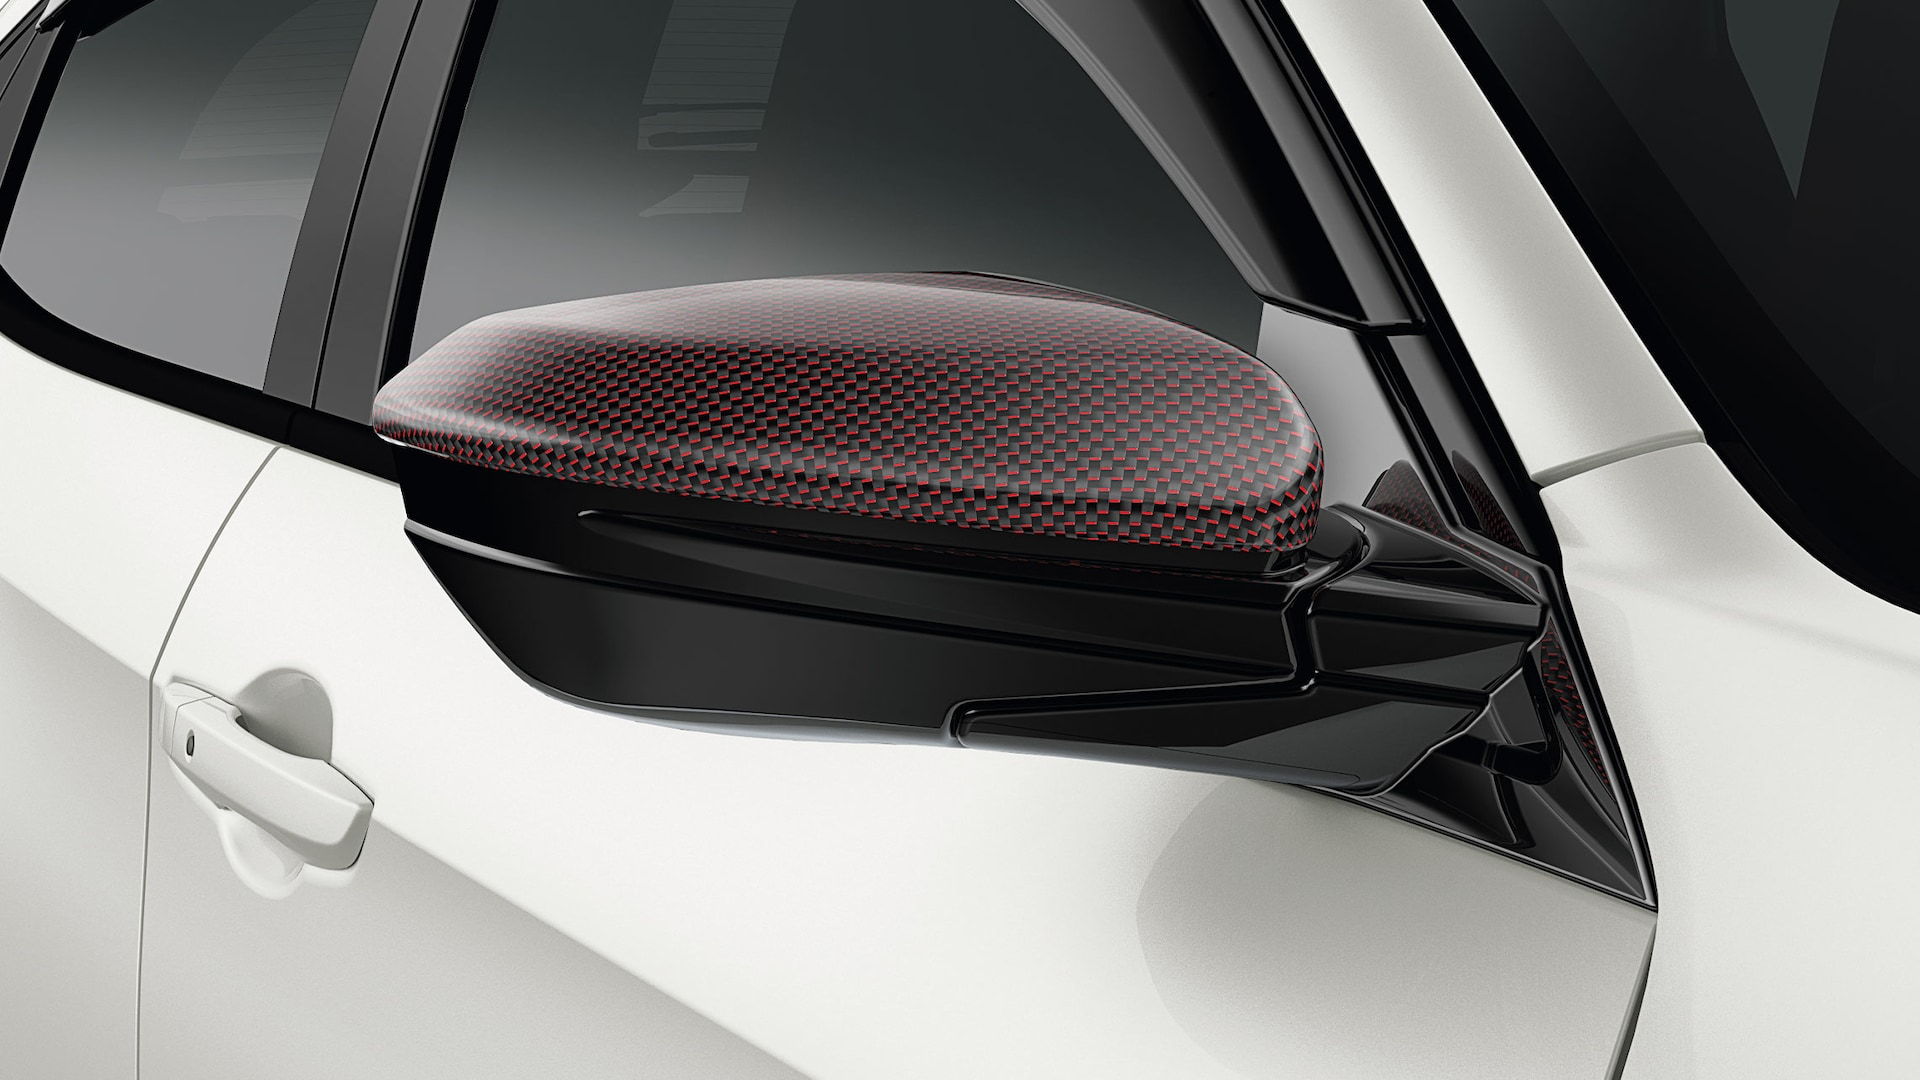 Detail view of Honda Genuine Accessory carbon fiber door mirror cover on the 2021 Honda Civic Type R.